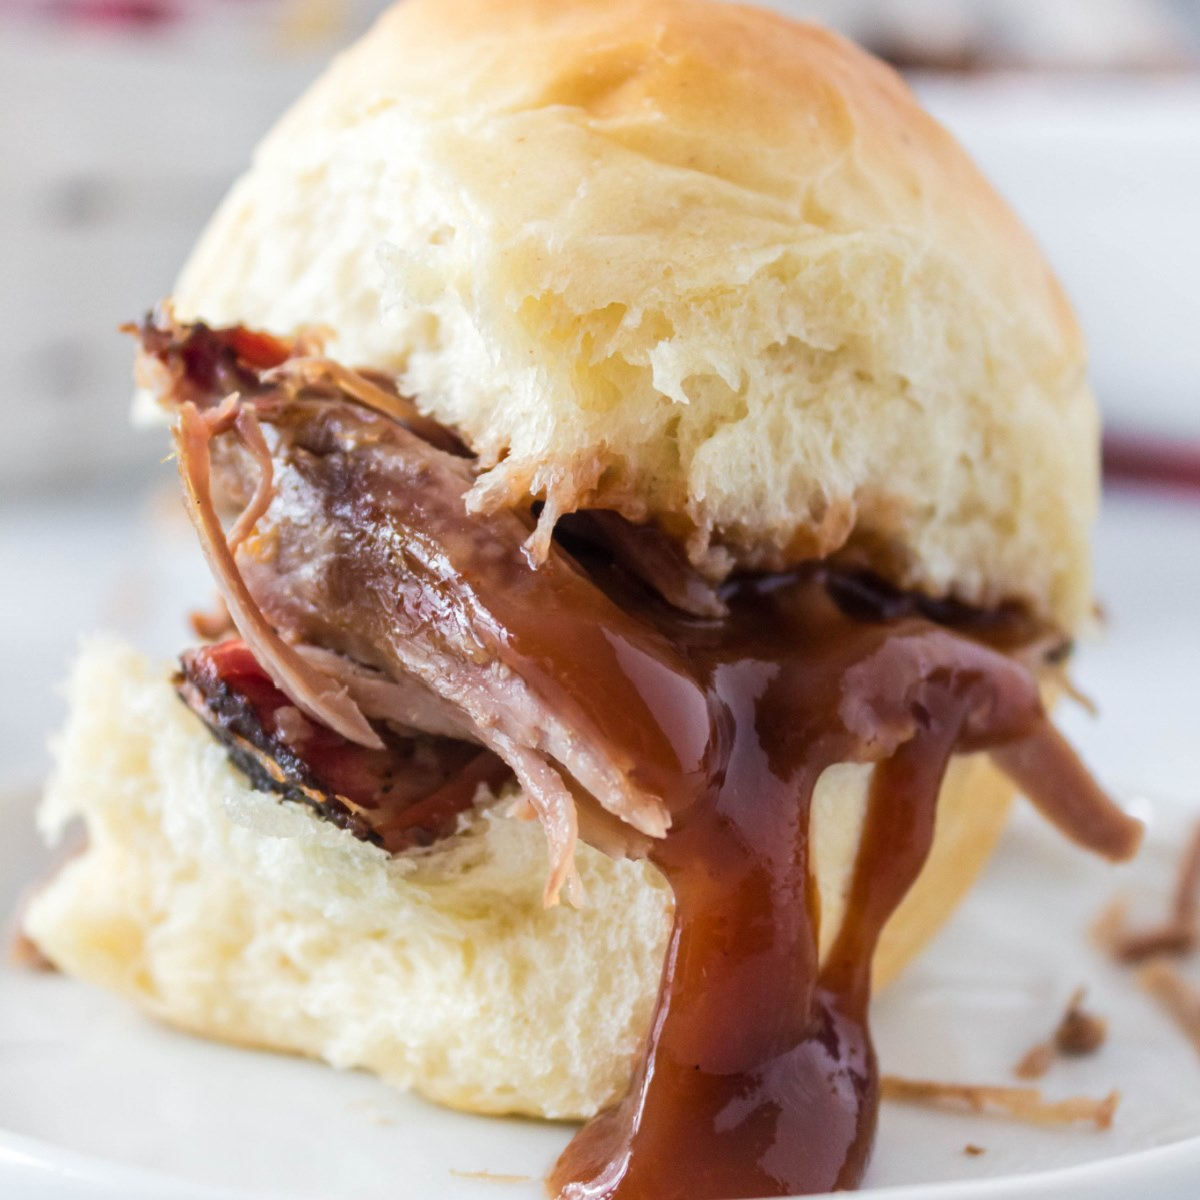 Shredded smoked BBQ pulled pork on a bun with BBQ sauce dripping down the side of the bun onto a small white plate.